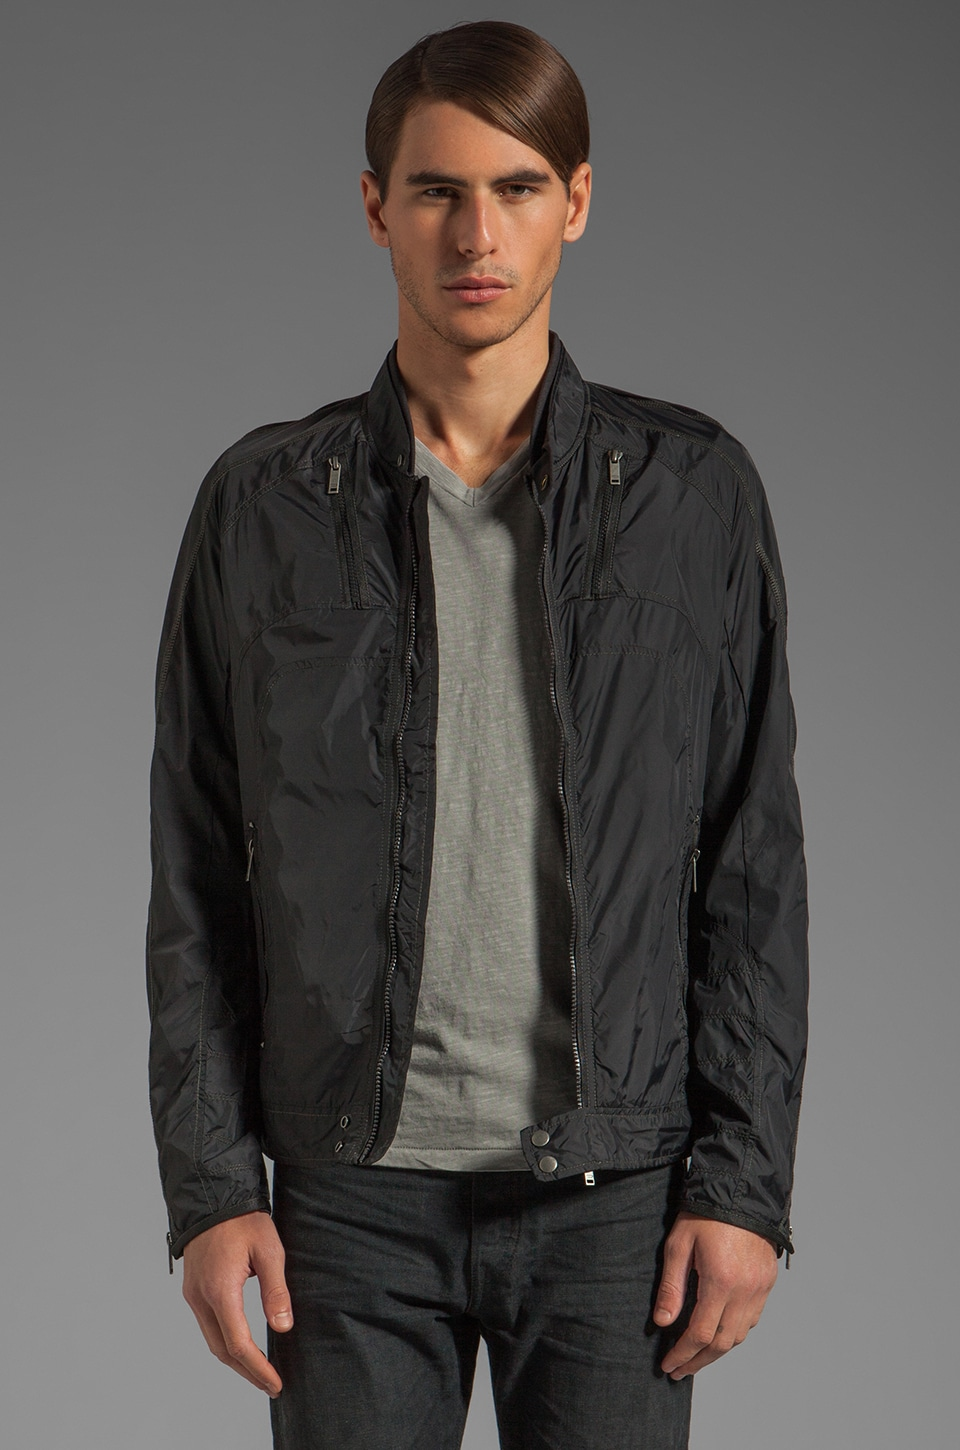 Diesel Jurlo Jacket in Black